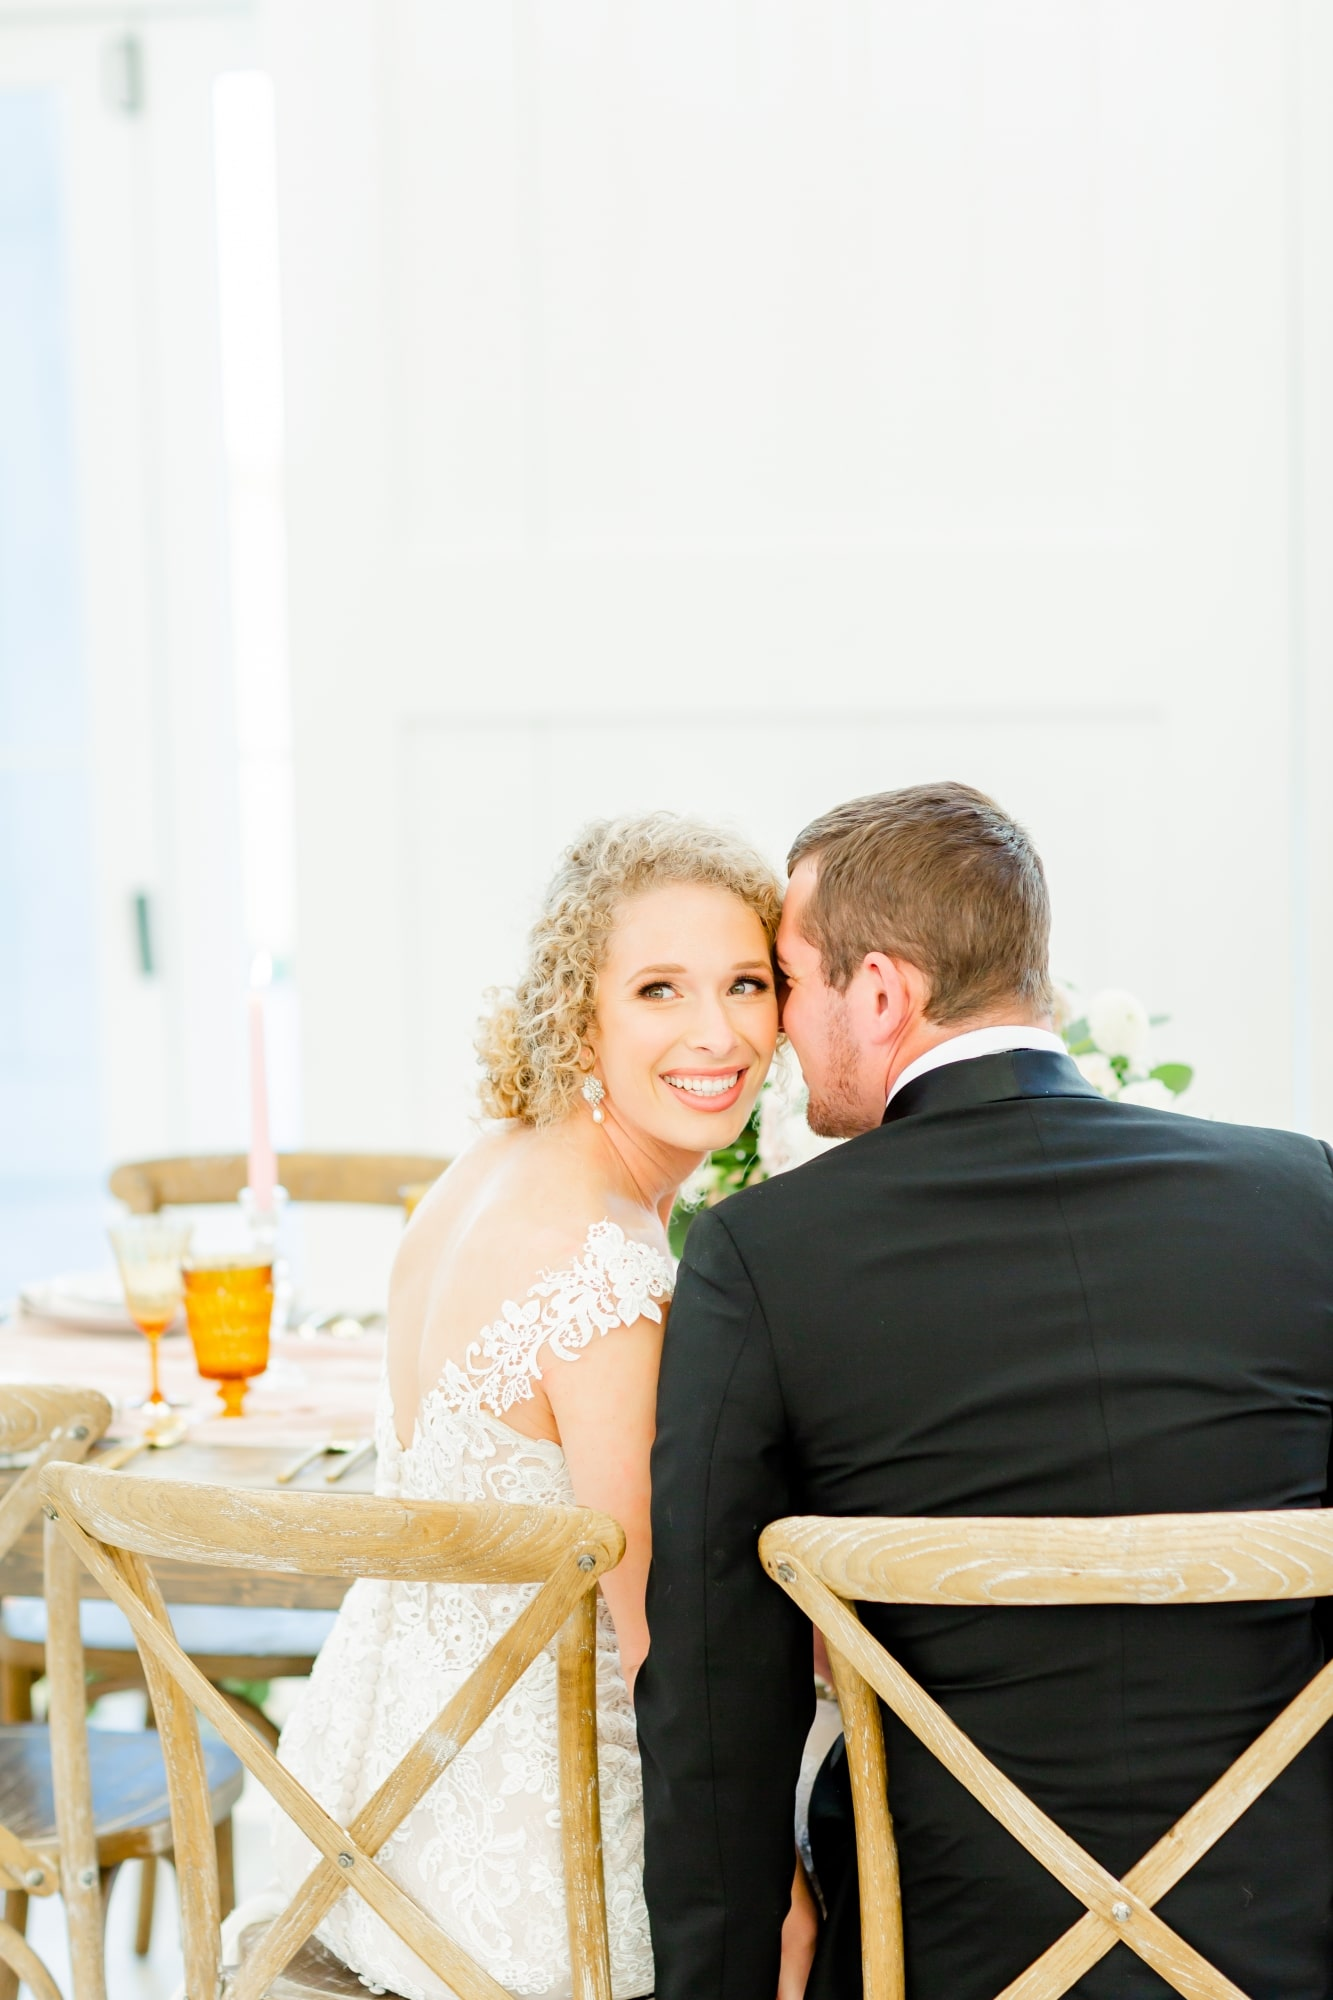 bride kissing smiling bride who is looking back at camera in rustic wooden chairs